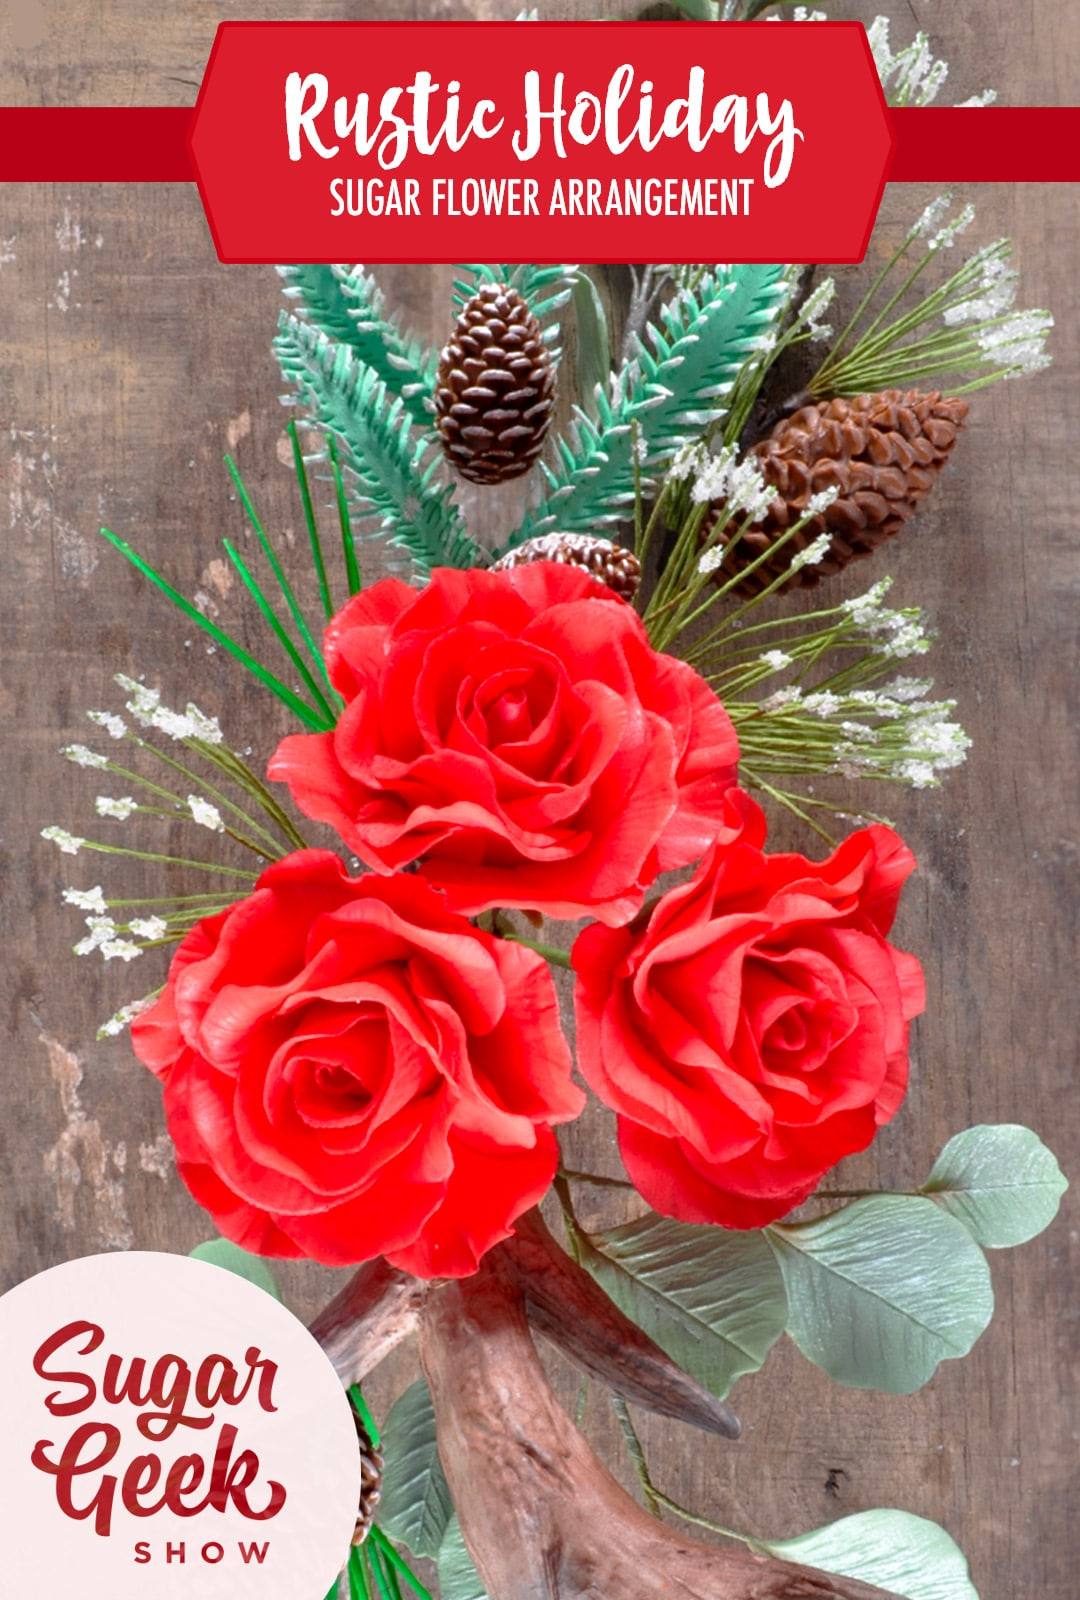 3 sugar flower roses, pine needles, edible pine cones and branches arranged in a rustic holiday pattern